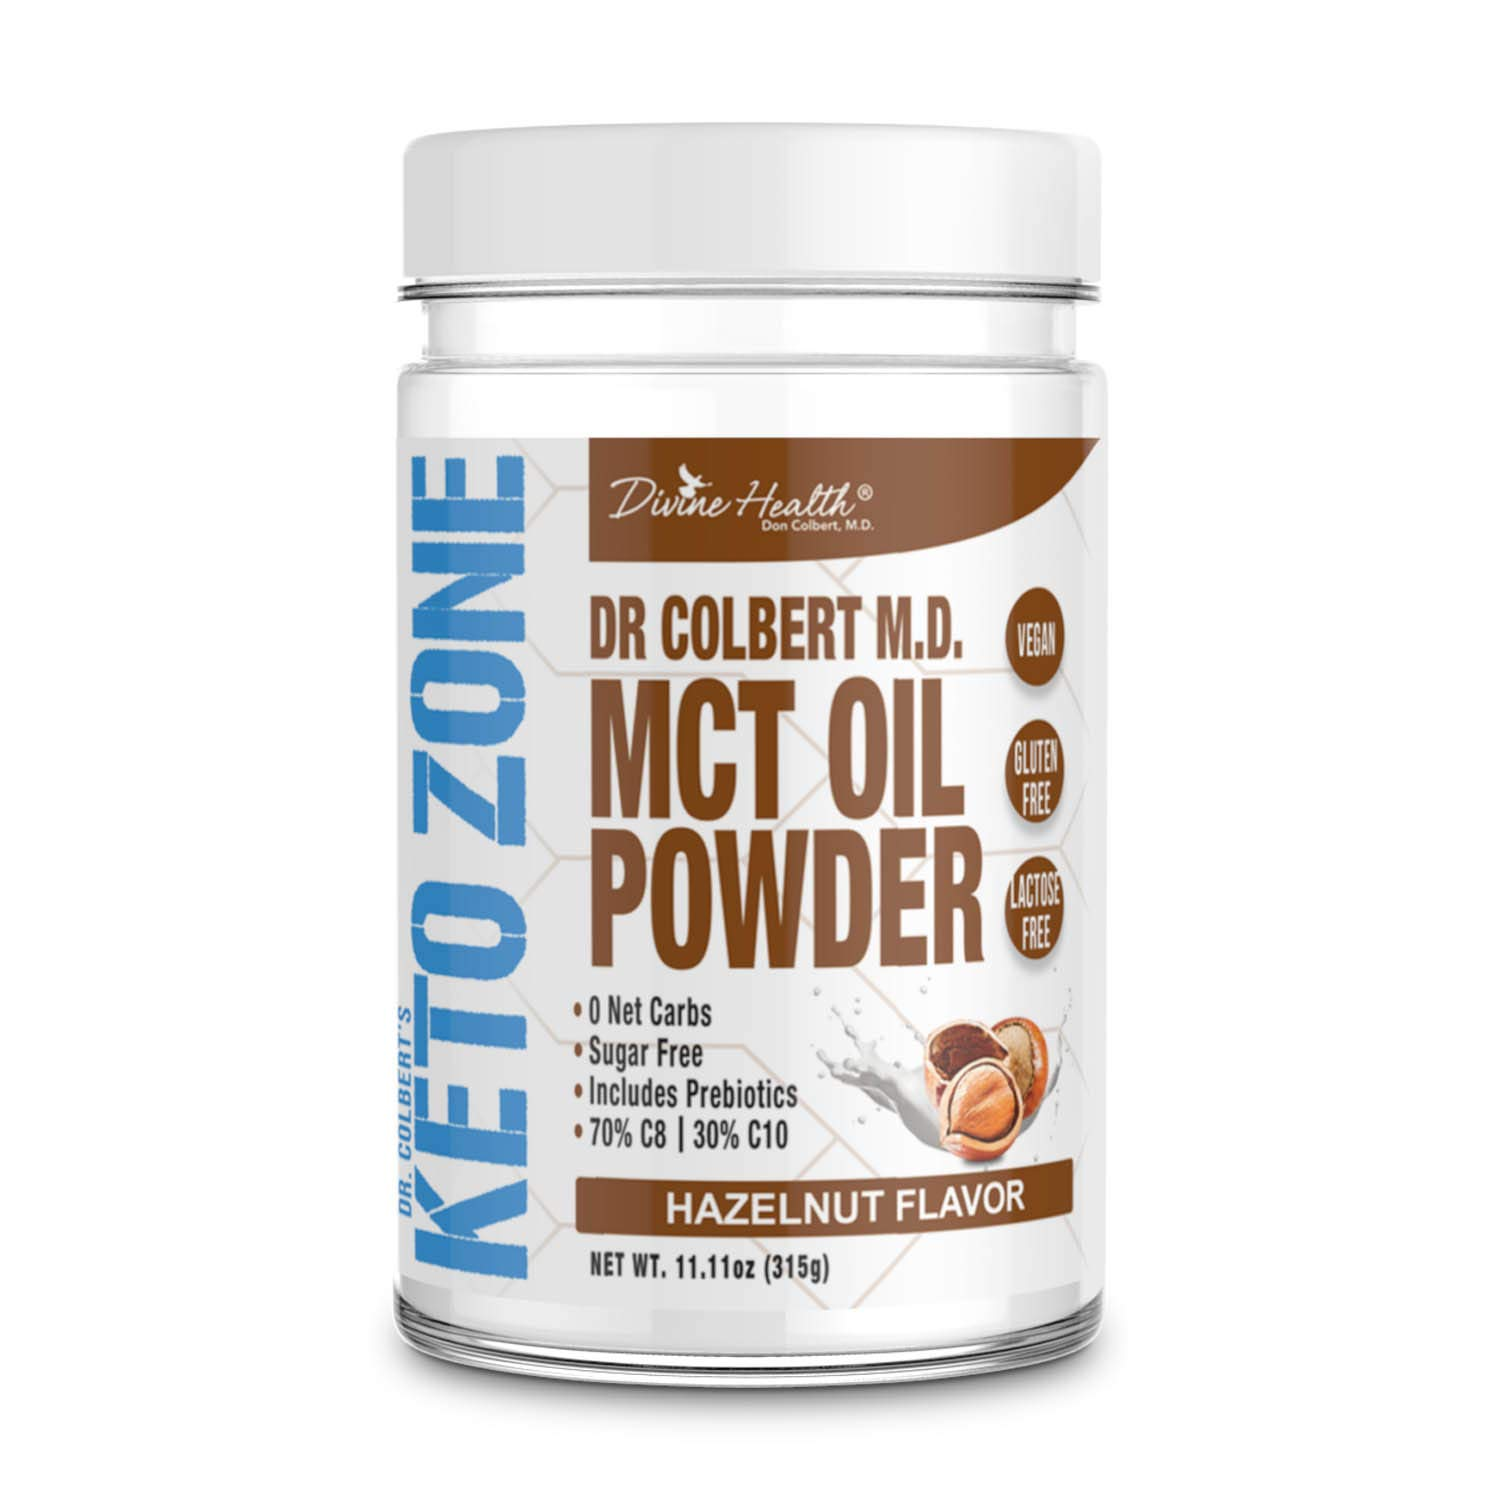 Keto Zone MCT Oil Powder | All Natural Hazelnut Flavor | 300 Grams & 30 Day Supply | Recommended in Dr. Colbert's Keto Zone Diet | Ketogenic Creamer | Best MCT Powder | 70% C8 30% C10 | 0 Net Carbs by Divine Health